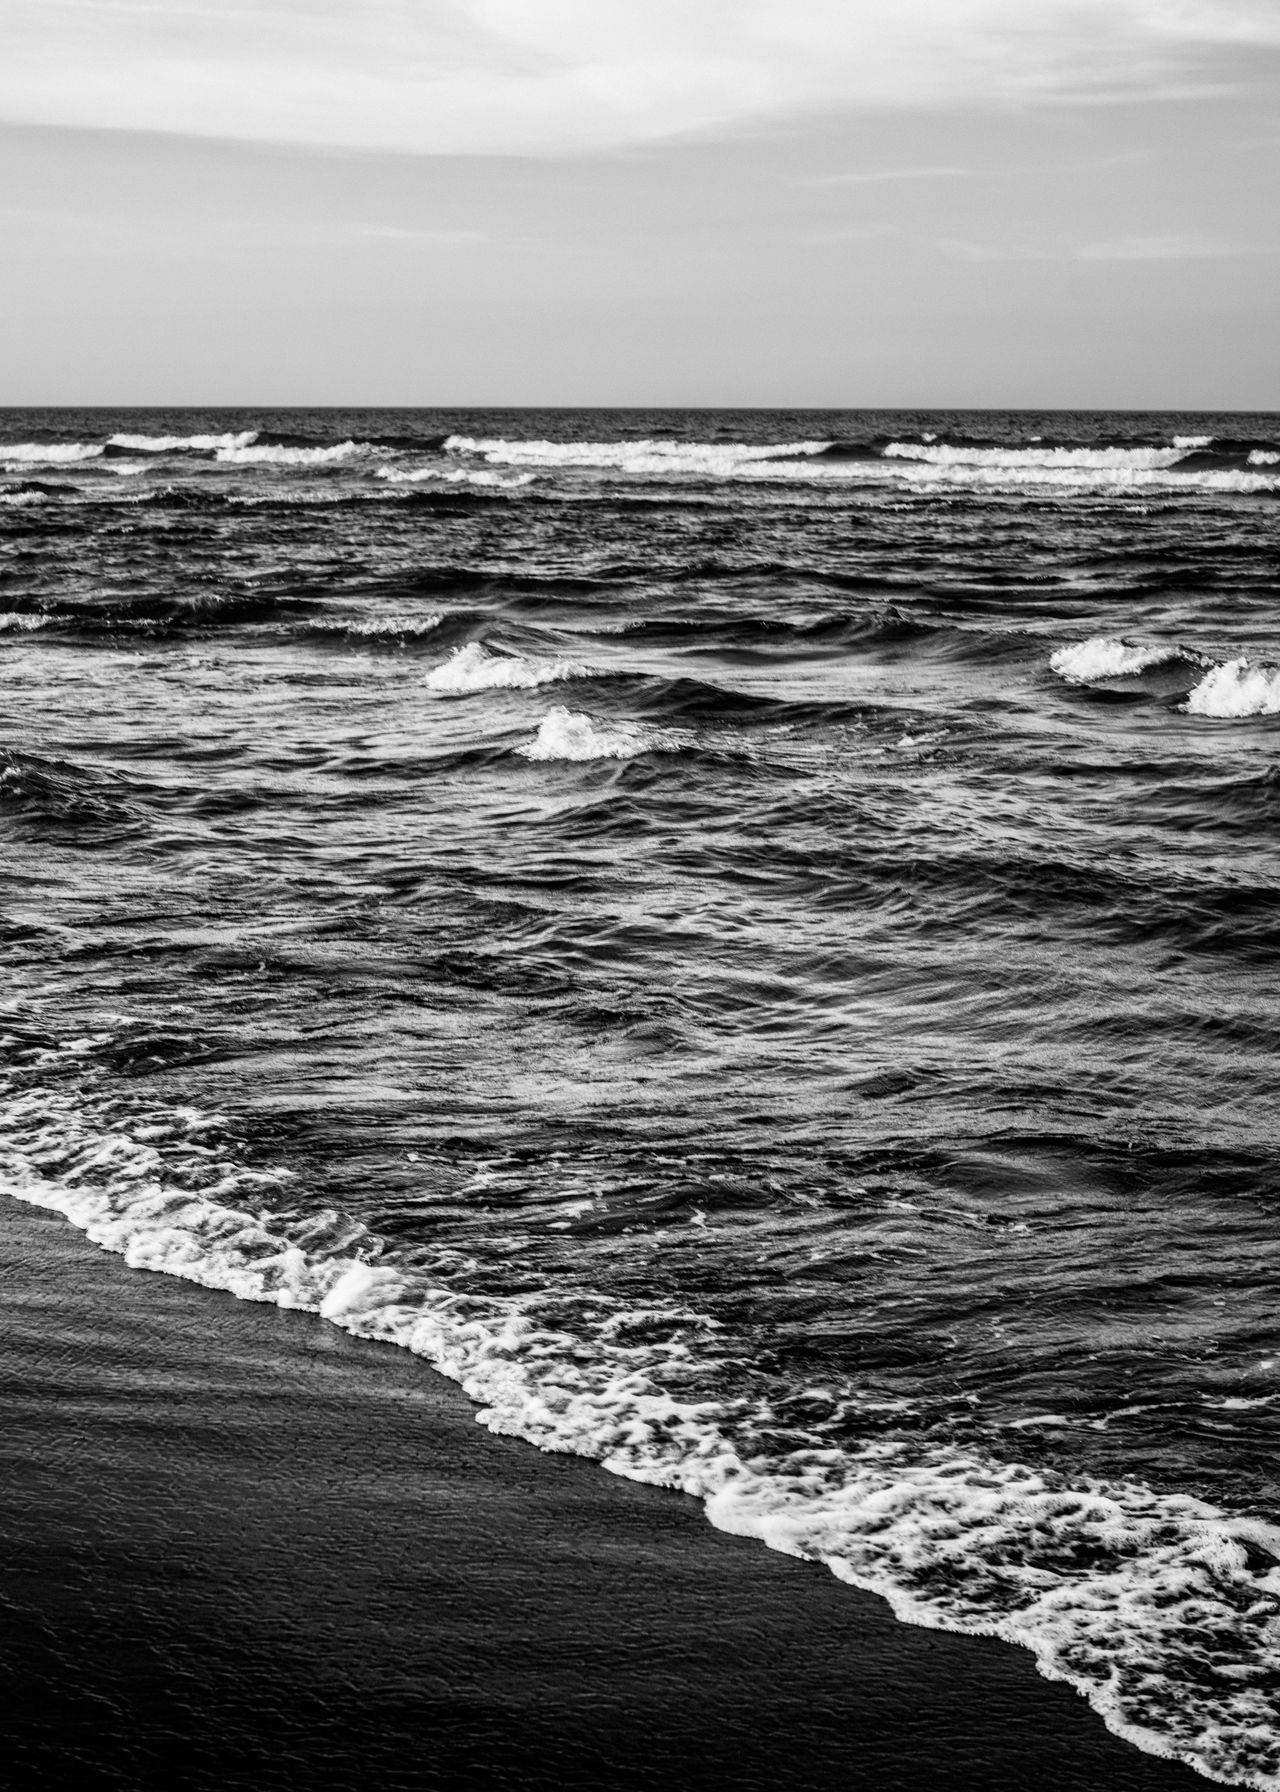 Abstract Photography Beach Beach Photography Beauty In Nature Black And White Photography Blackandwhite Day Horizon Over Water Nature Nature Photography Nature_collection No People Outdoors Remote Scenics Sea Sky Tranquil Scene Tranquility Water Water Reflections Water_collection Wave Waves, Ocean, Nature Neighborhood Map